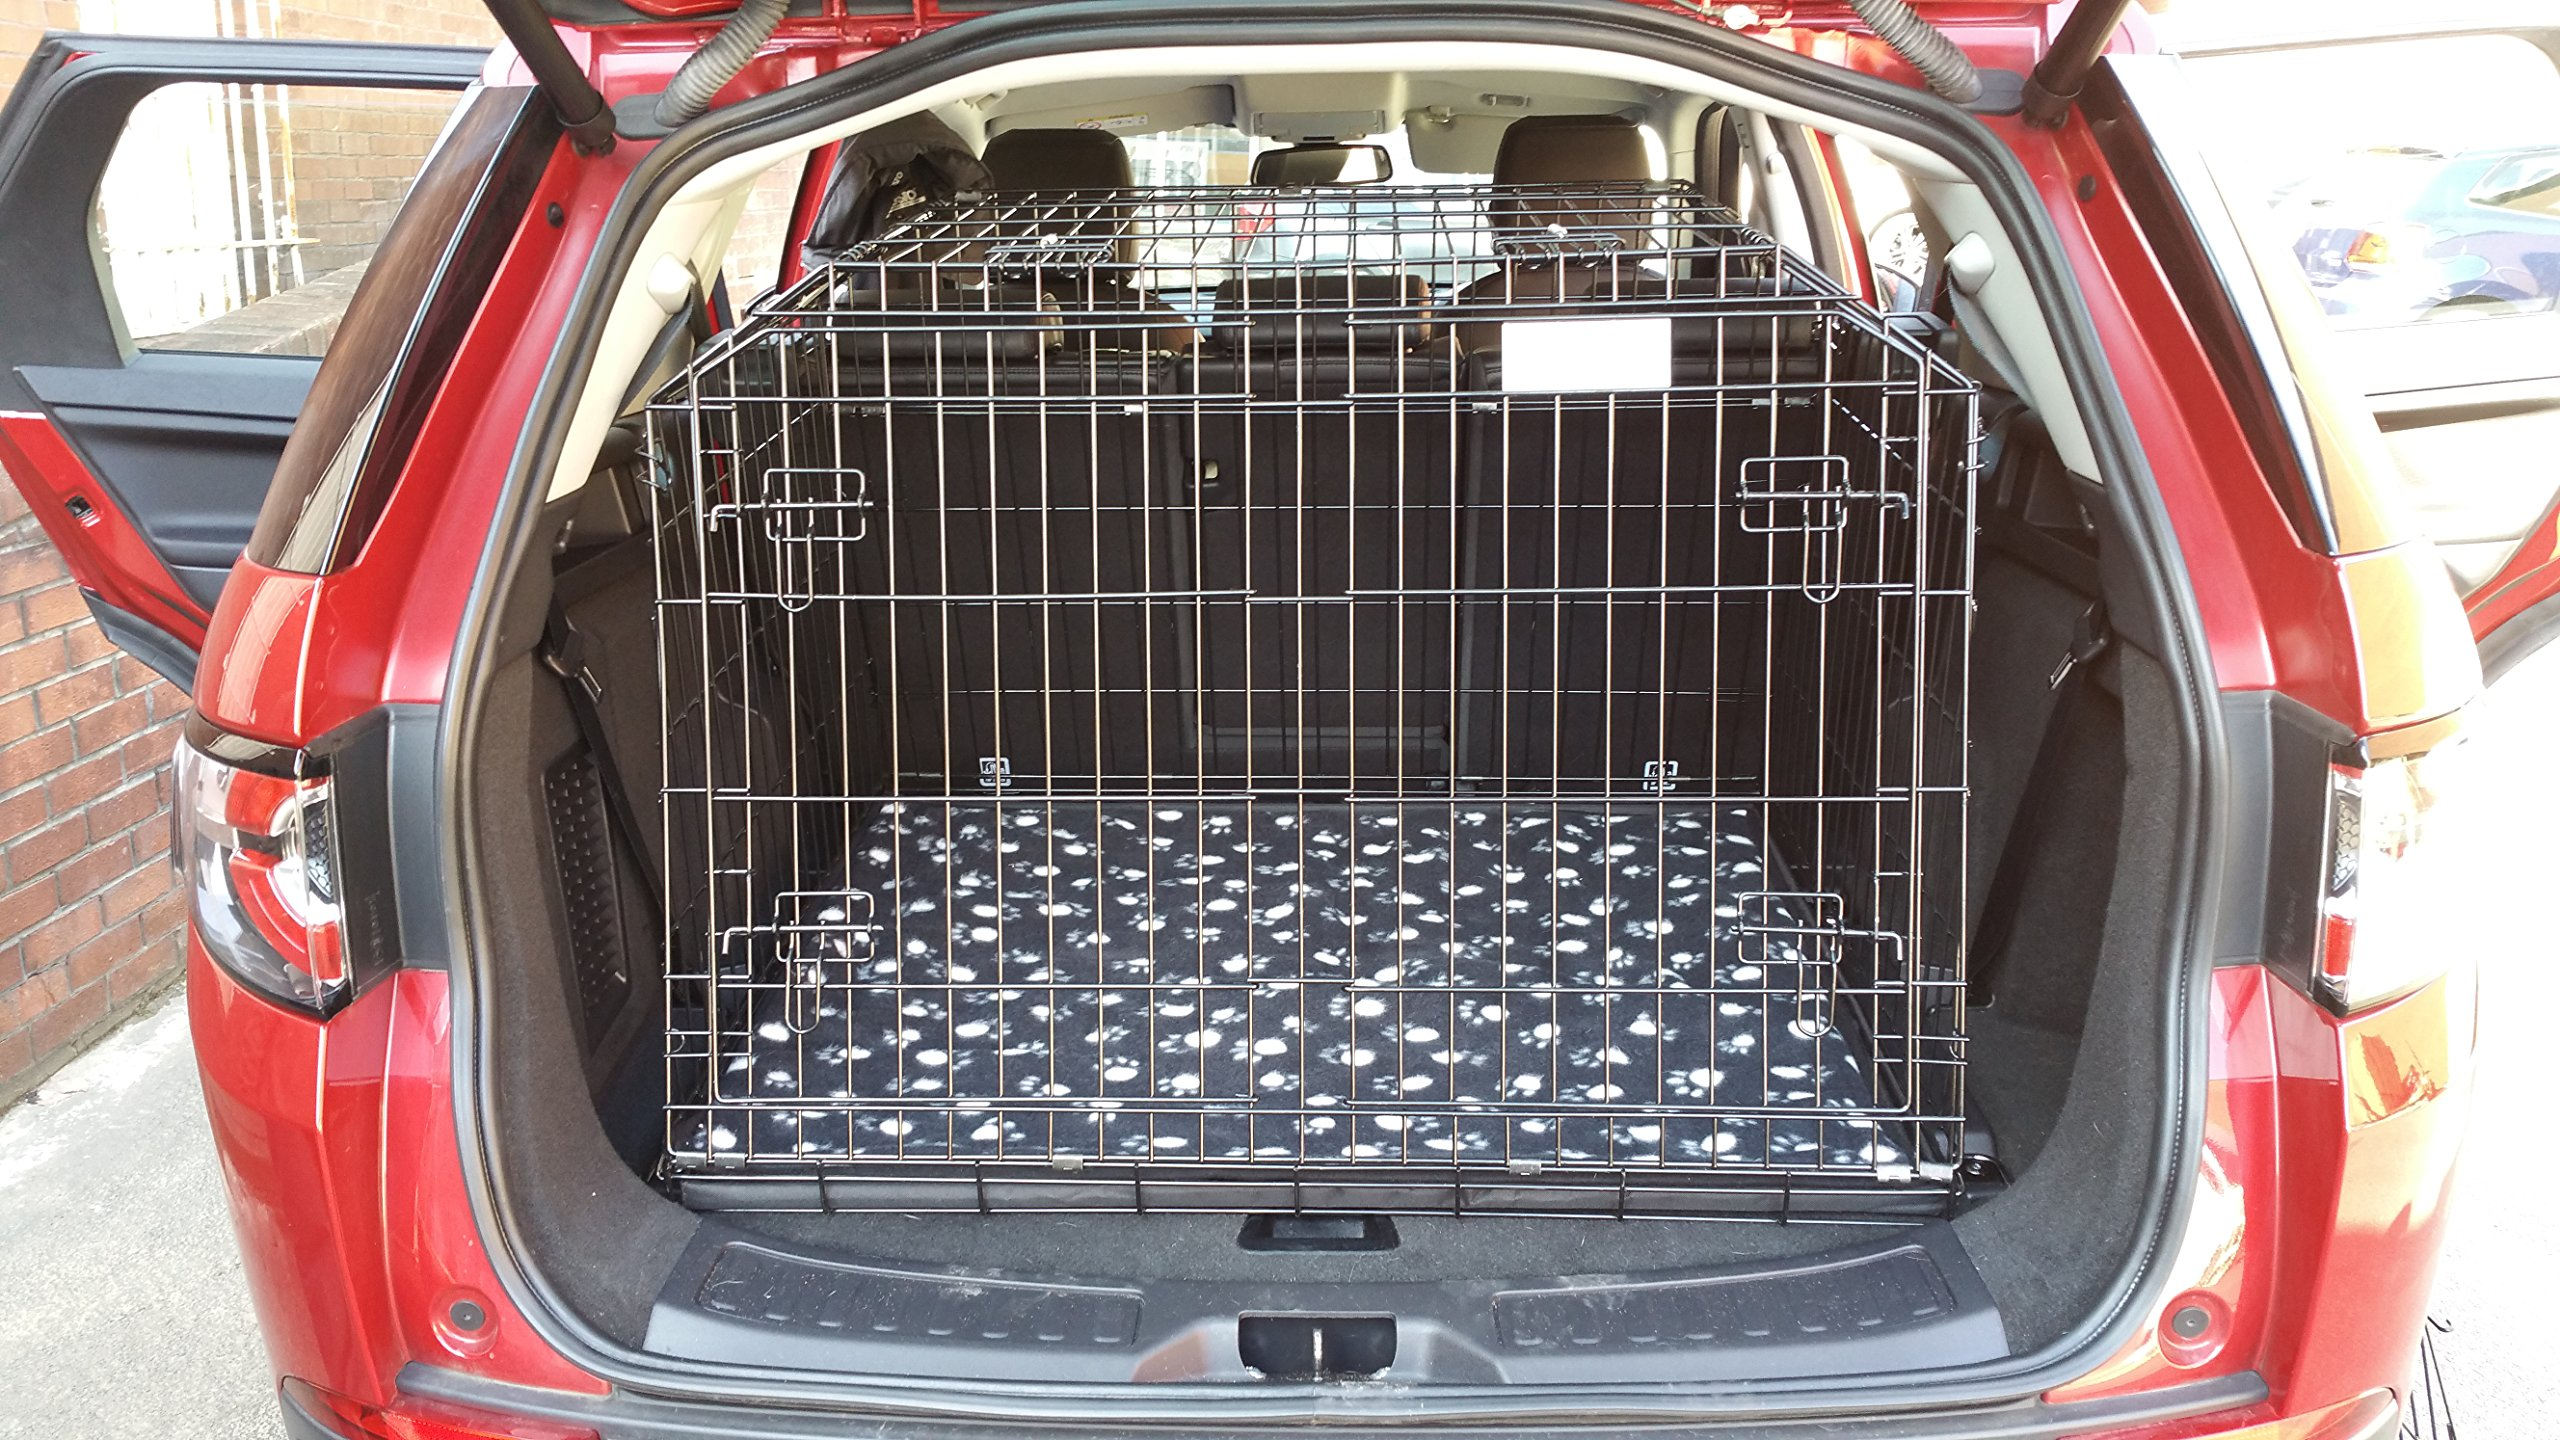 Arrow LANDROVER DISCOVERY SPORT 15 ONWARDS SLOPED 4×4 ESTATE CAR DOG CAGE TRAVEL CRATE PUPPY BOOT GUARD CAGES